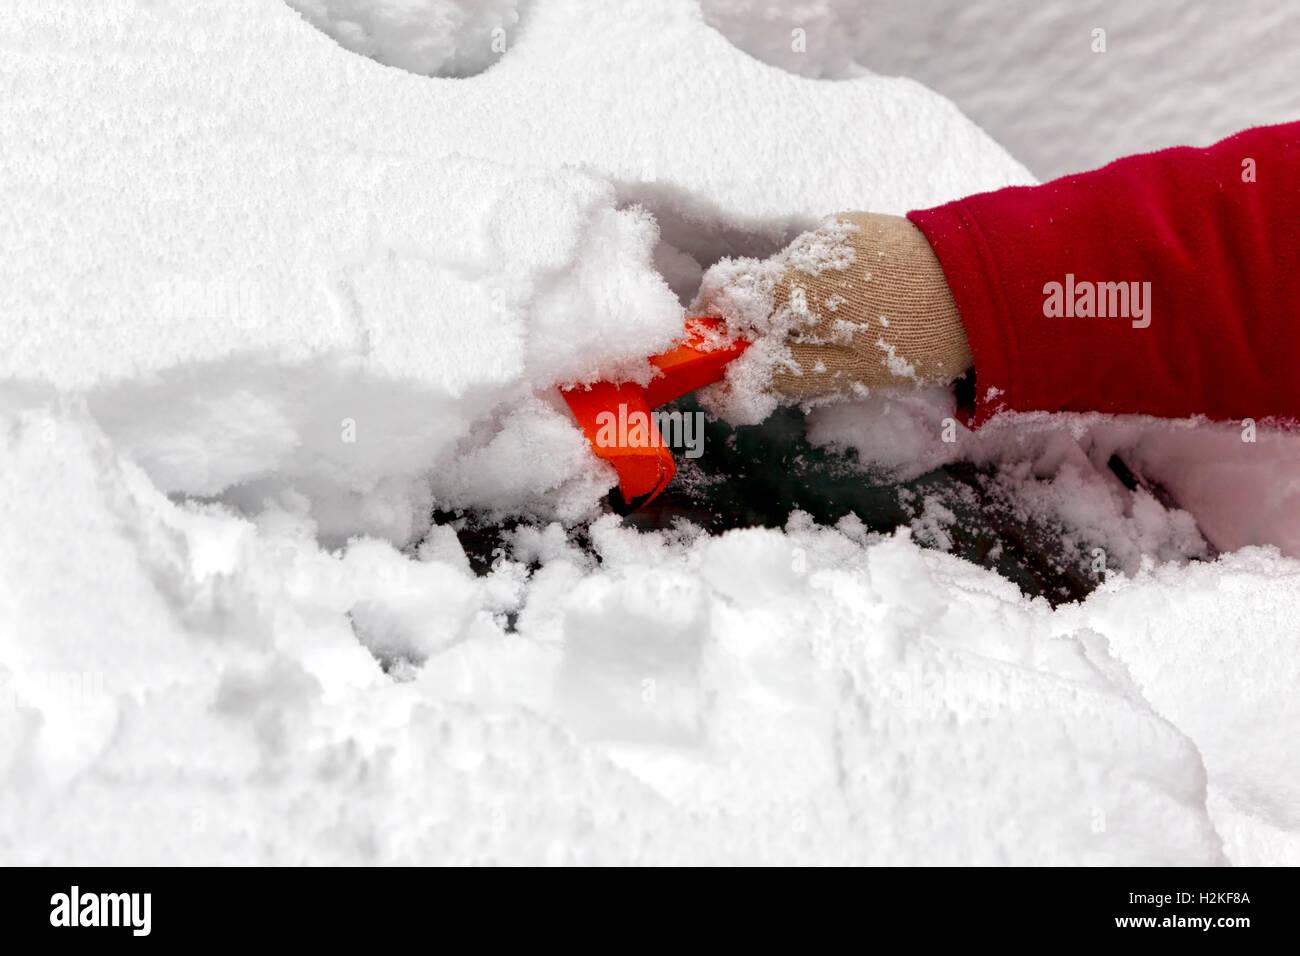 A woman uses an ice scraper to remove snow and ice from her car windscreen in winter. Warminster, Wiltshire, United - Stock Image